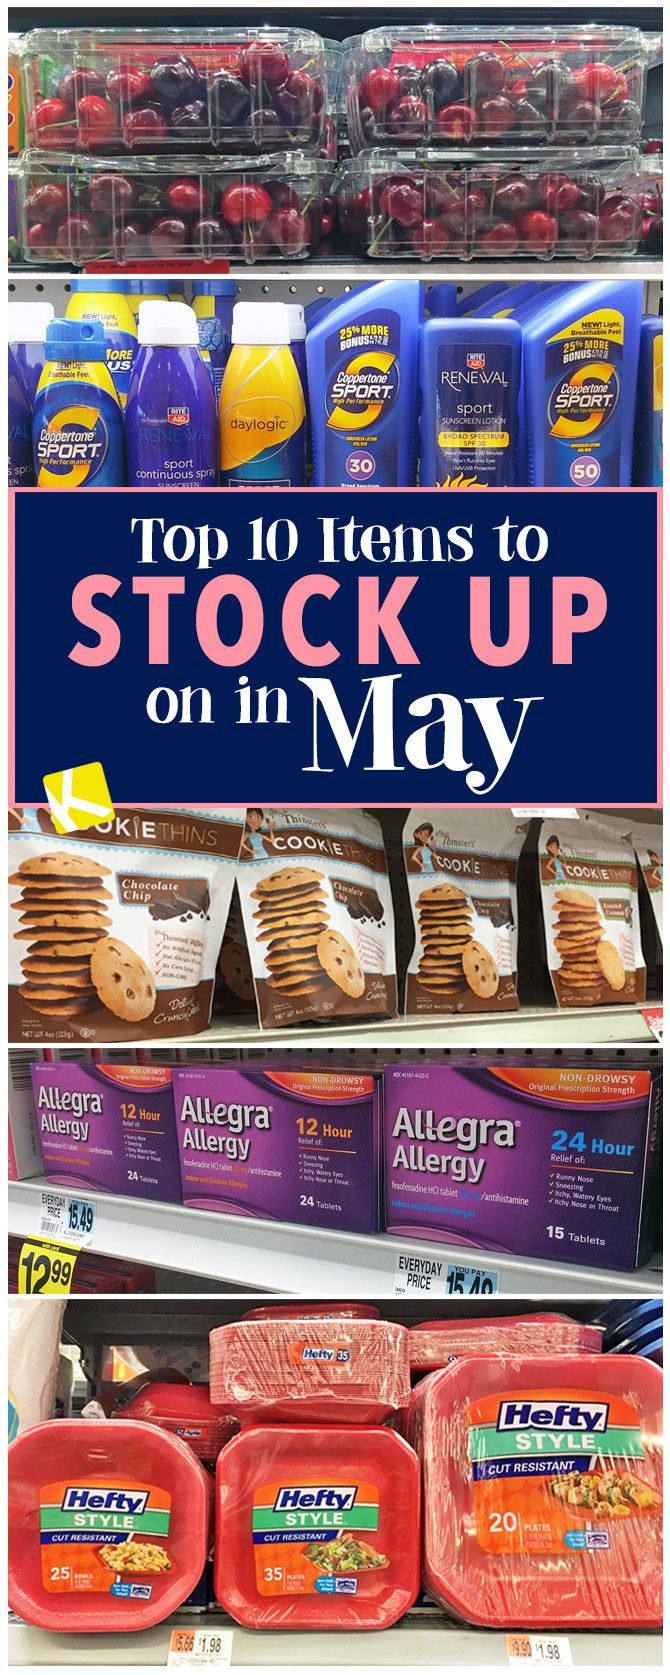 Top 10 Items to Stock Up on in May